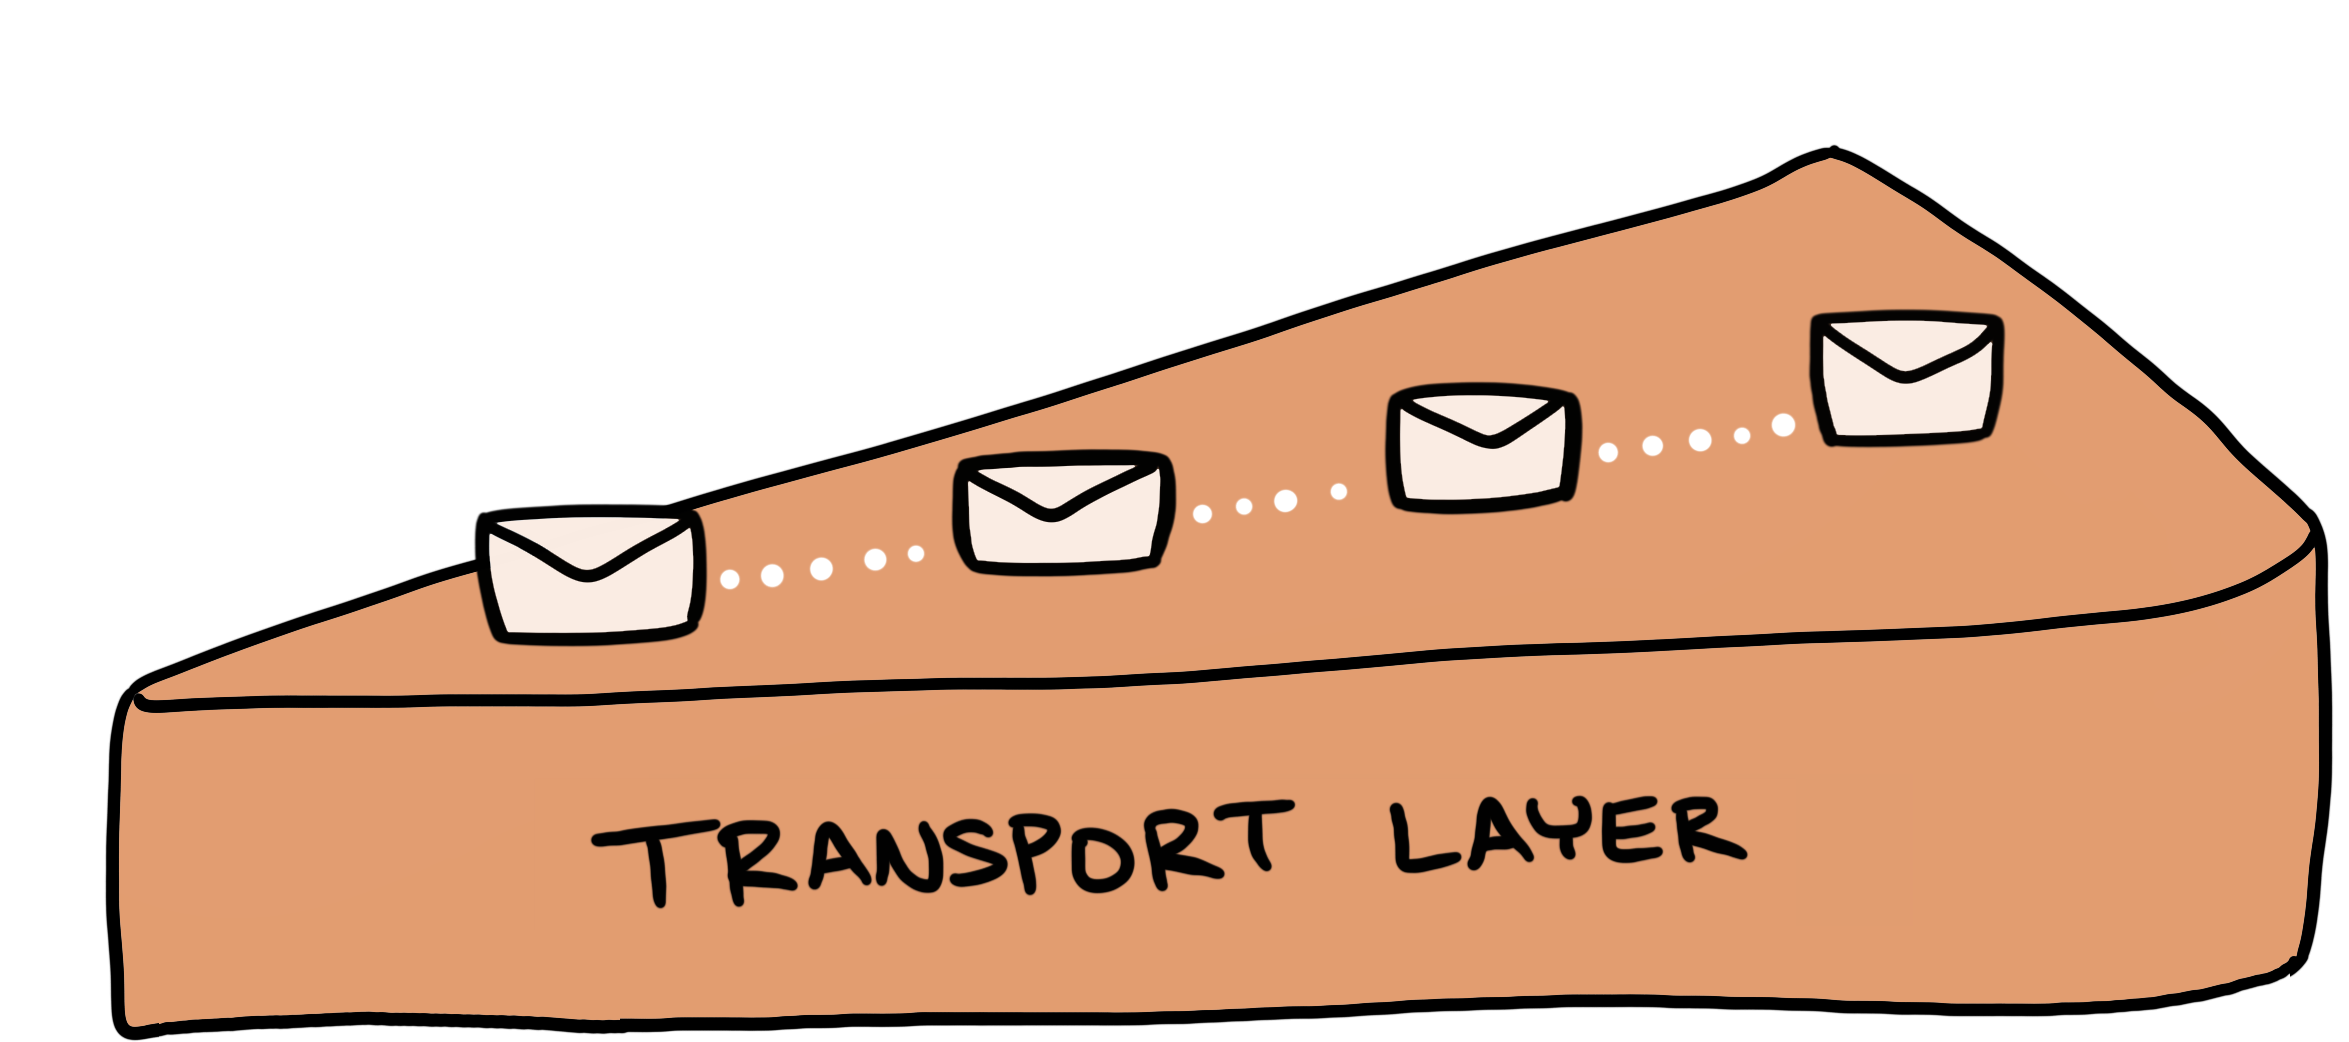 Transport cake layer cartoon